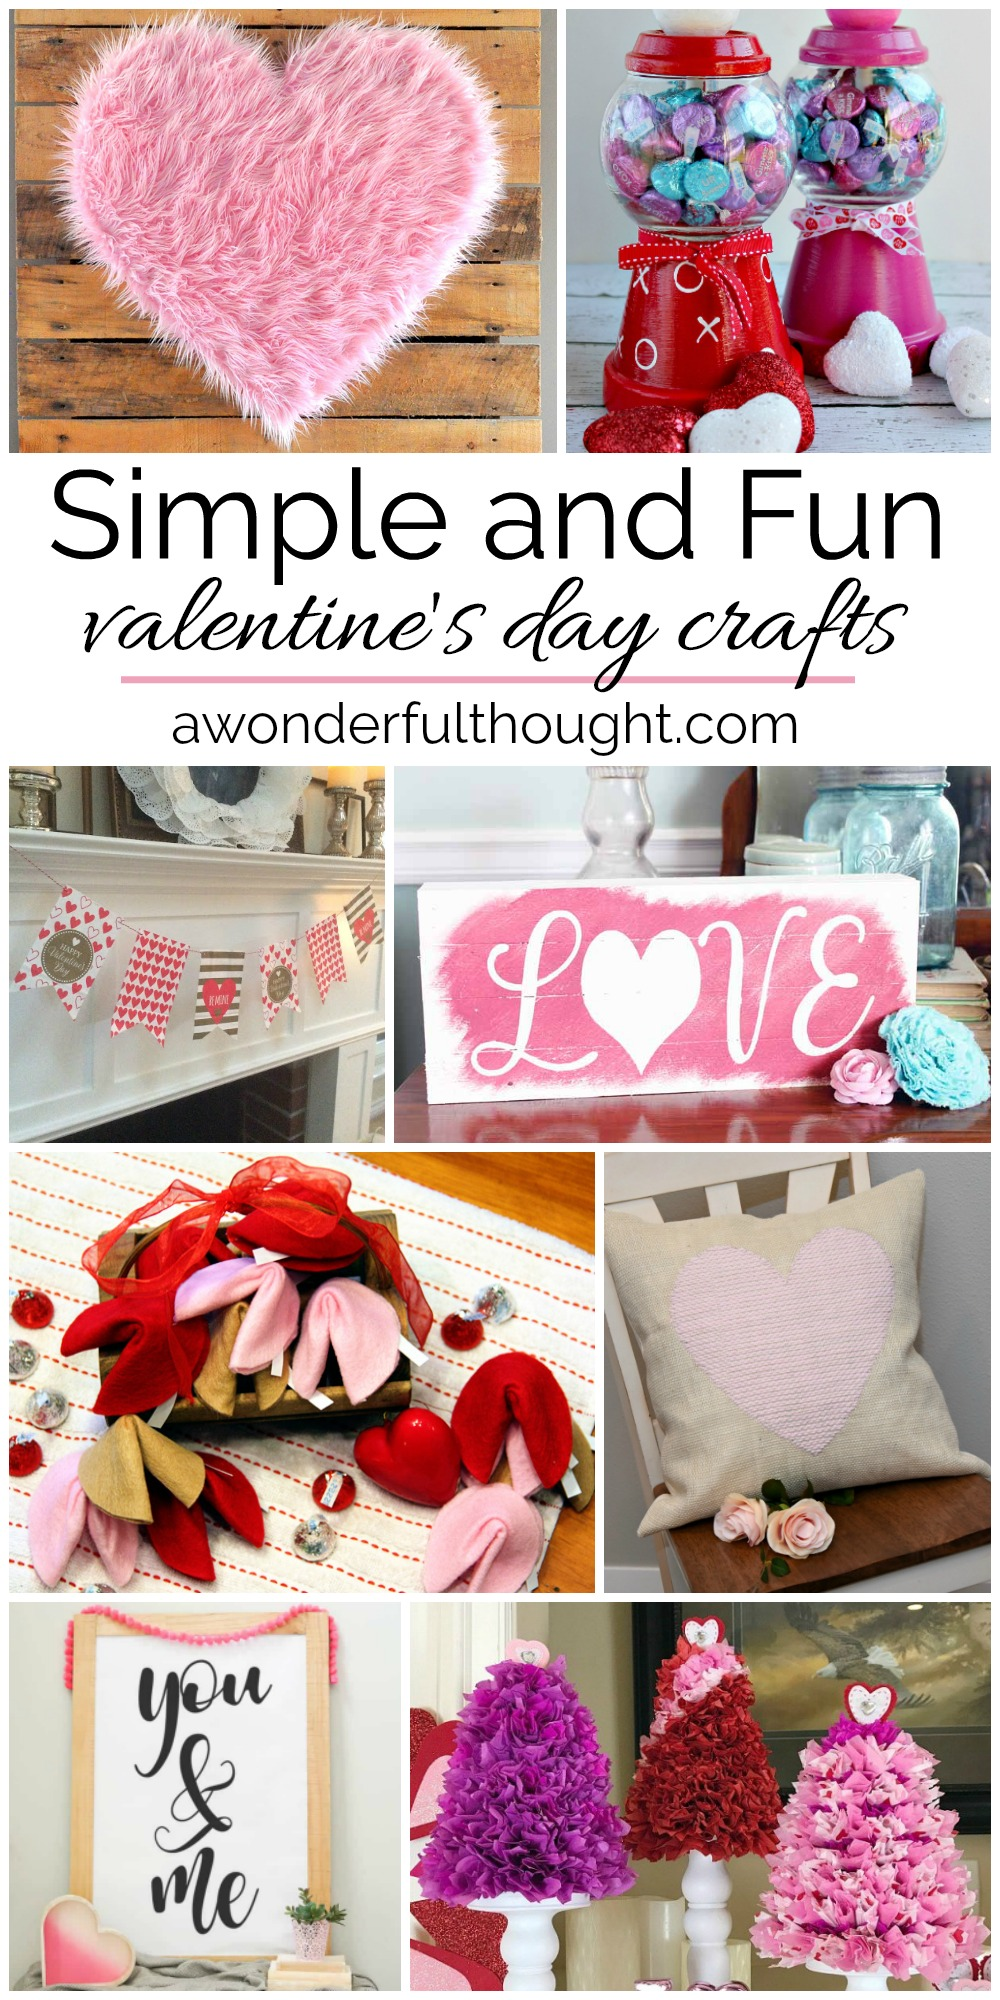 Simple and Fun Valentine's Day Crafts - A Wonderful Thought